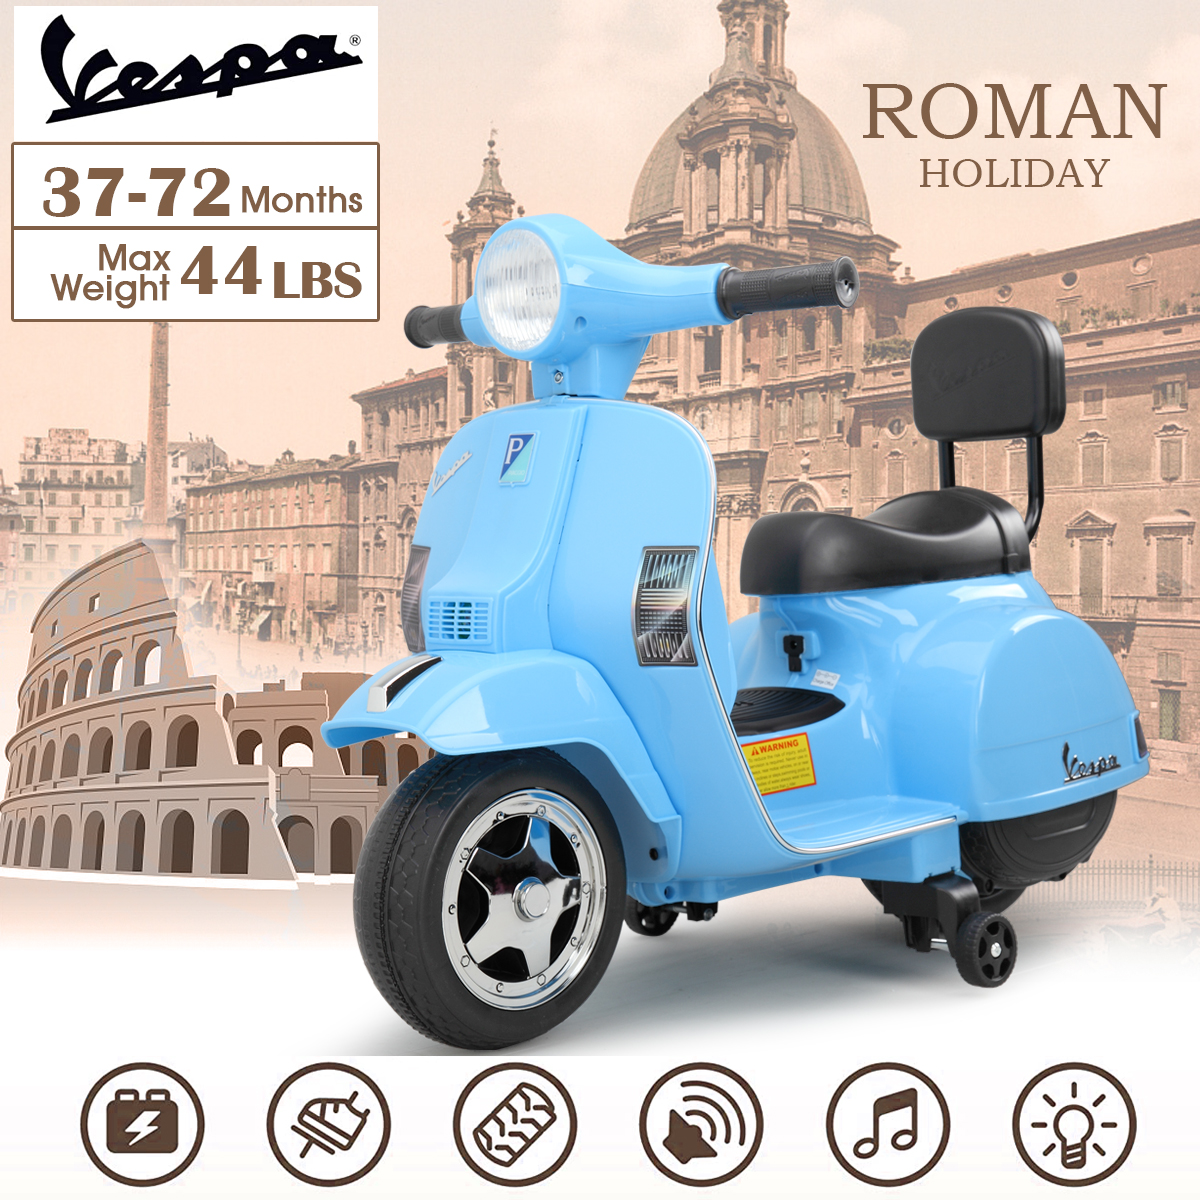 Vespa 6V Kids Ride-on Toys for 3-6 Year Old TH17X0479 cj2